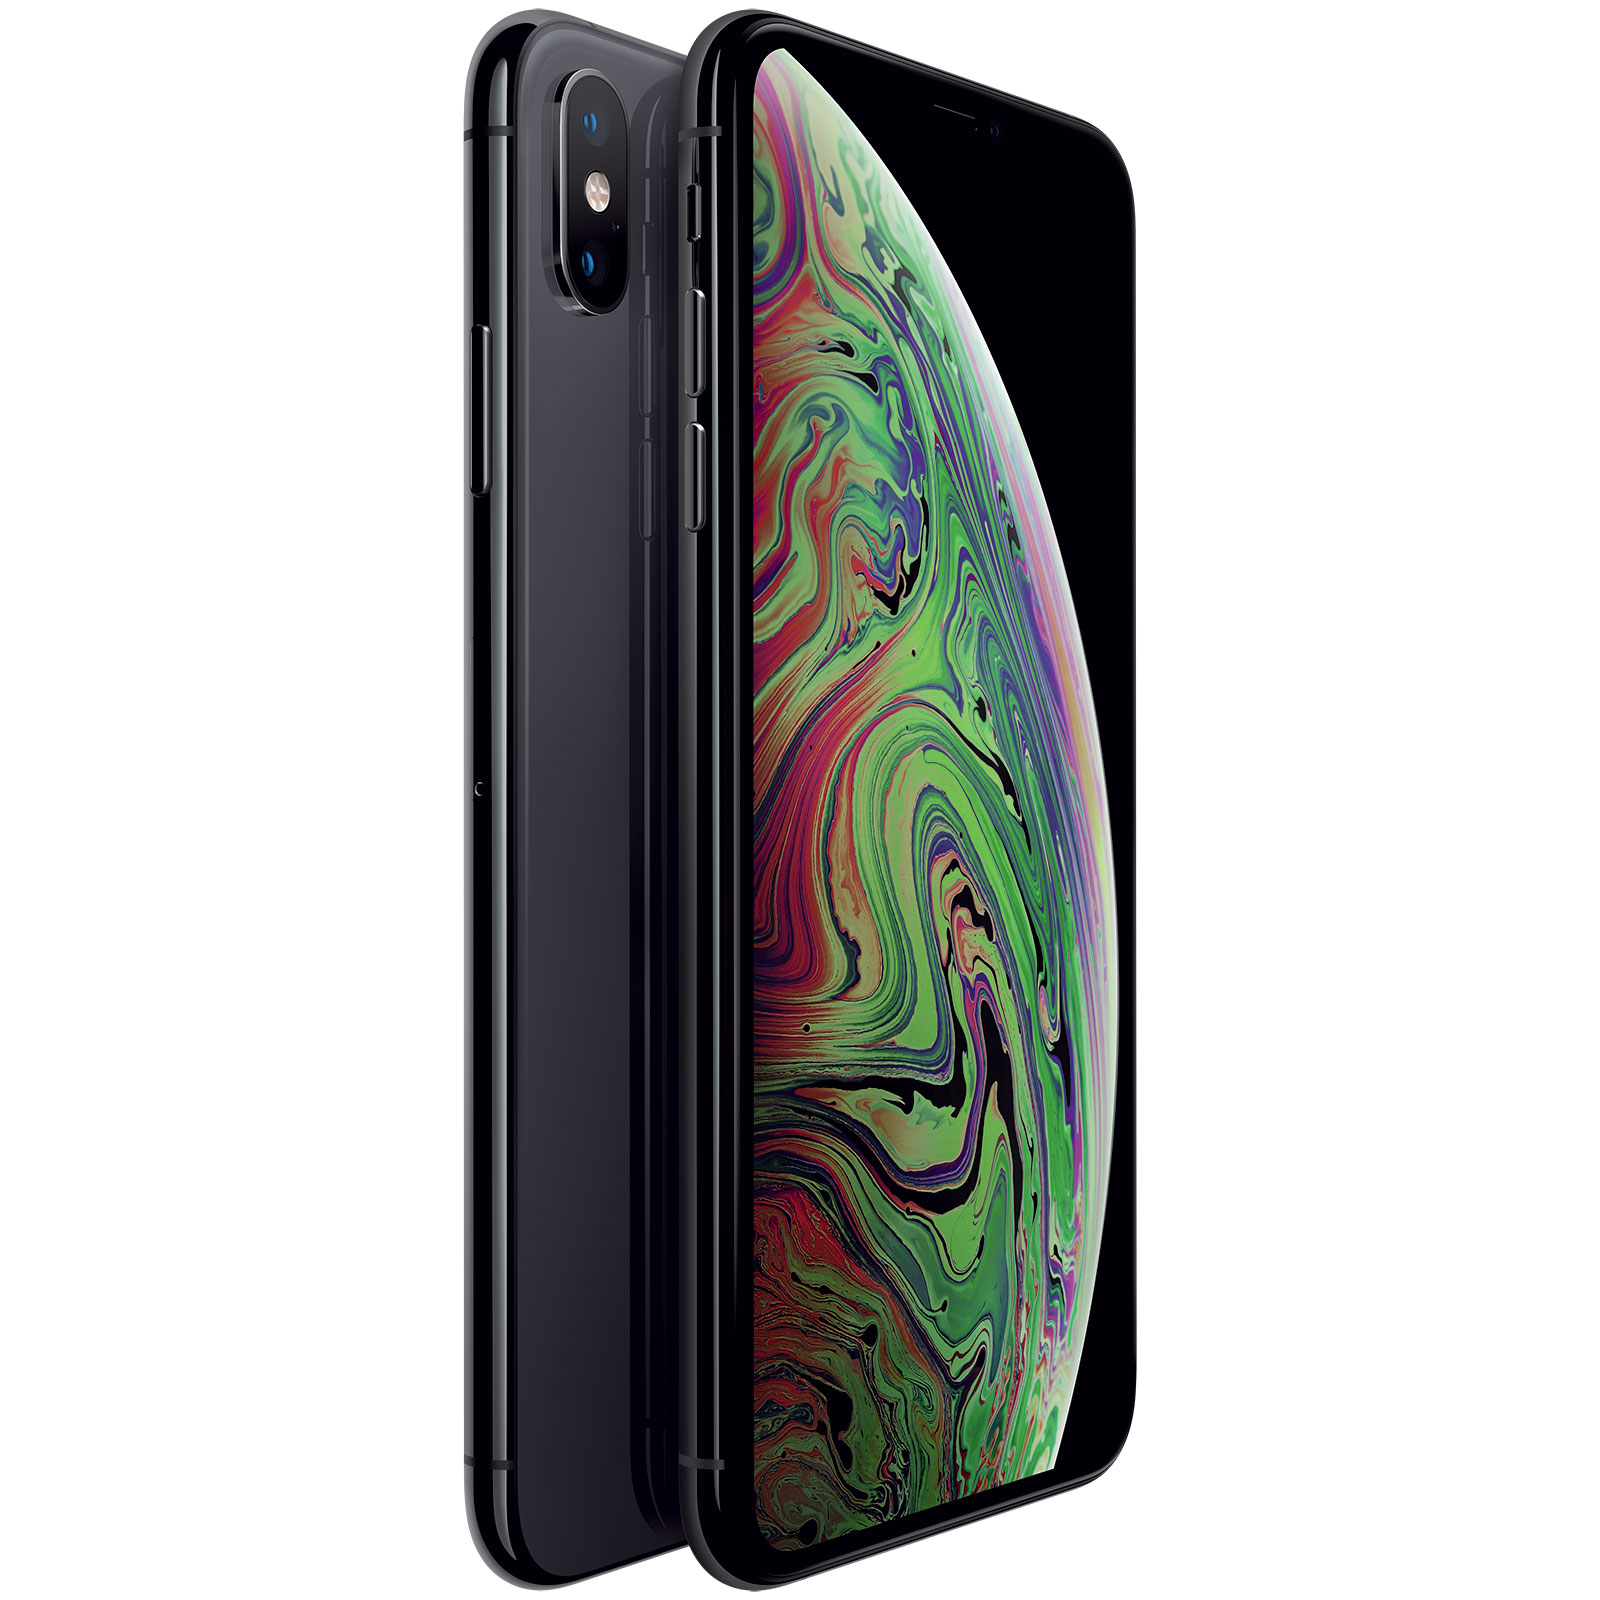 "Mobile & smartphone Apple iPhone Xs Max 256 Go Gris Sidéral Smartphone 4G-LTE Advanced IP68 Dual SIM - Apple A12 Bionic Hexa-Core - RAM 4 Go - Ecran Super Retina 6.5"" 1242 x 2688 - 256 Go - NFC/Bluetooth 5.0 - iOS 12"